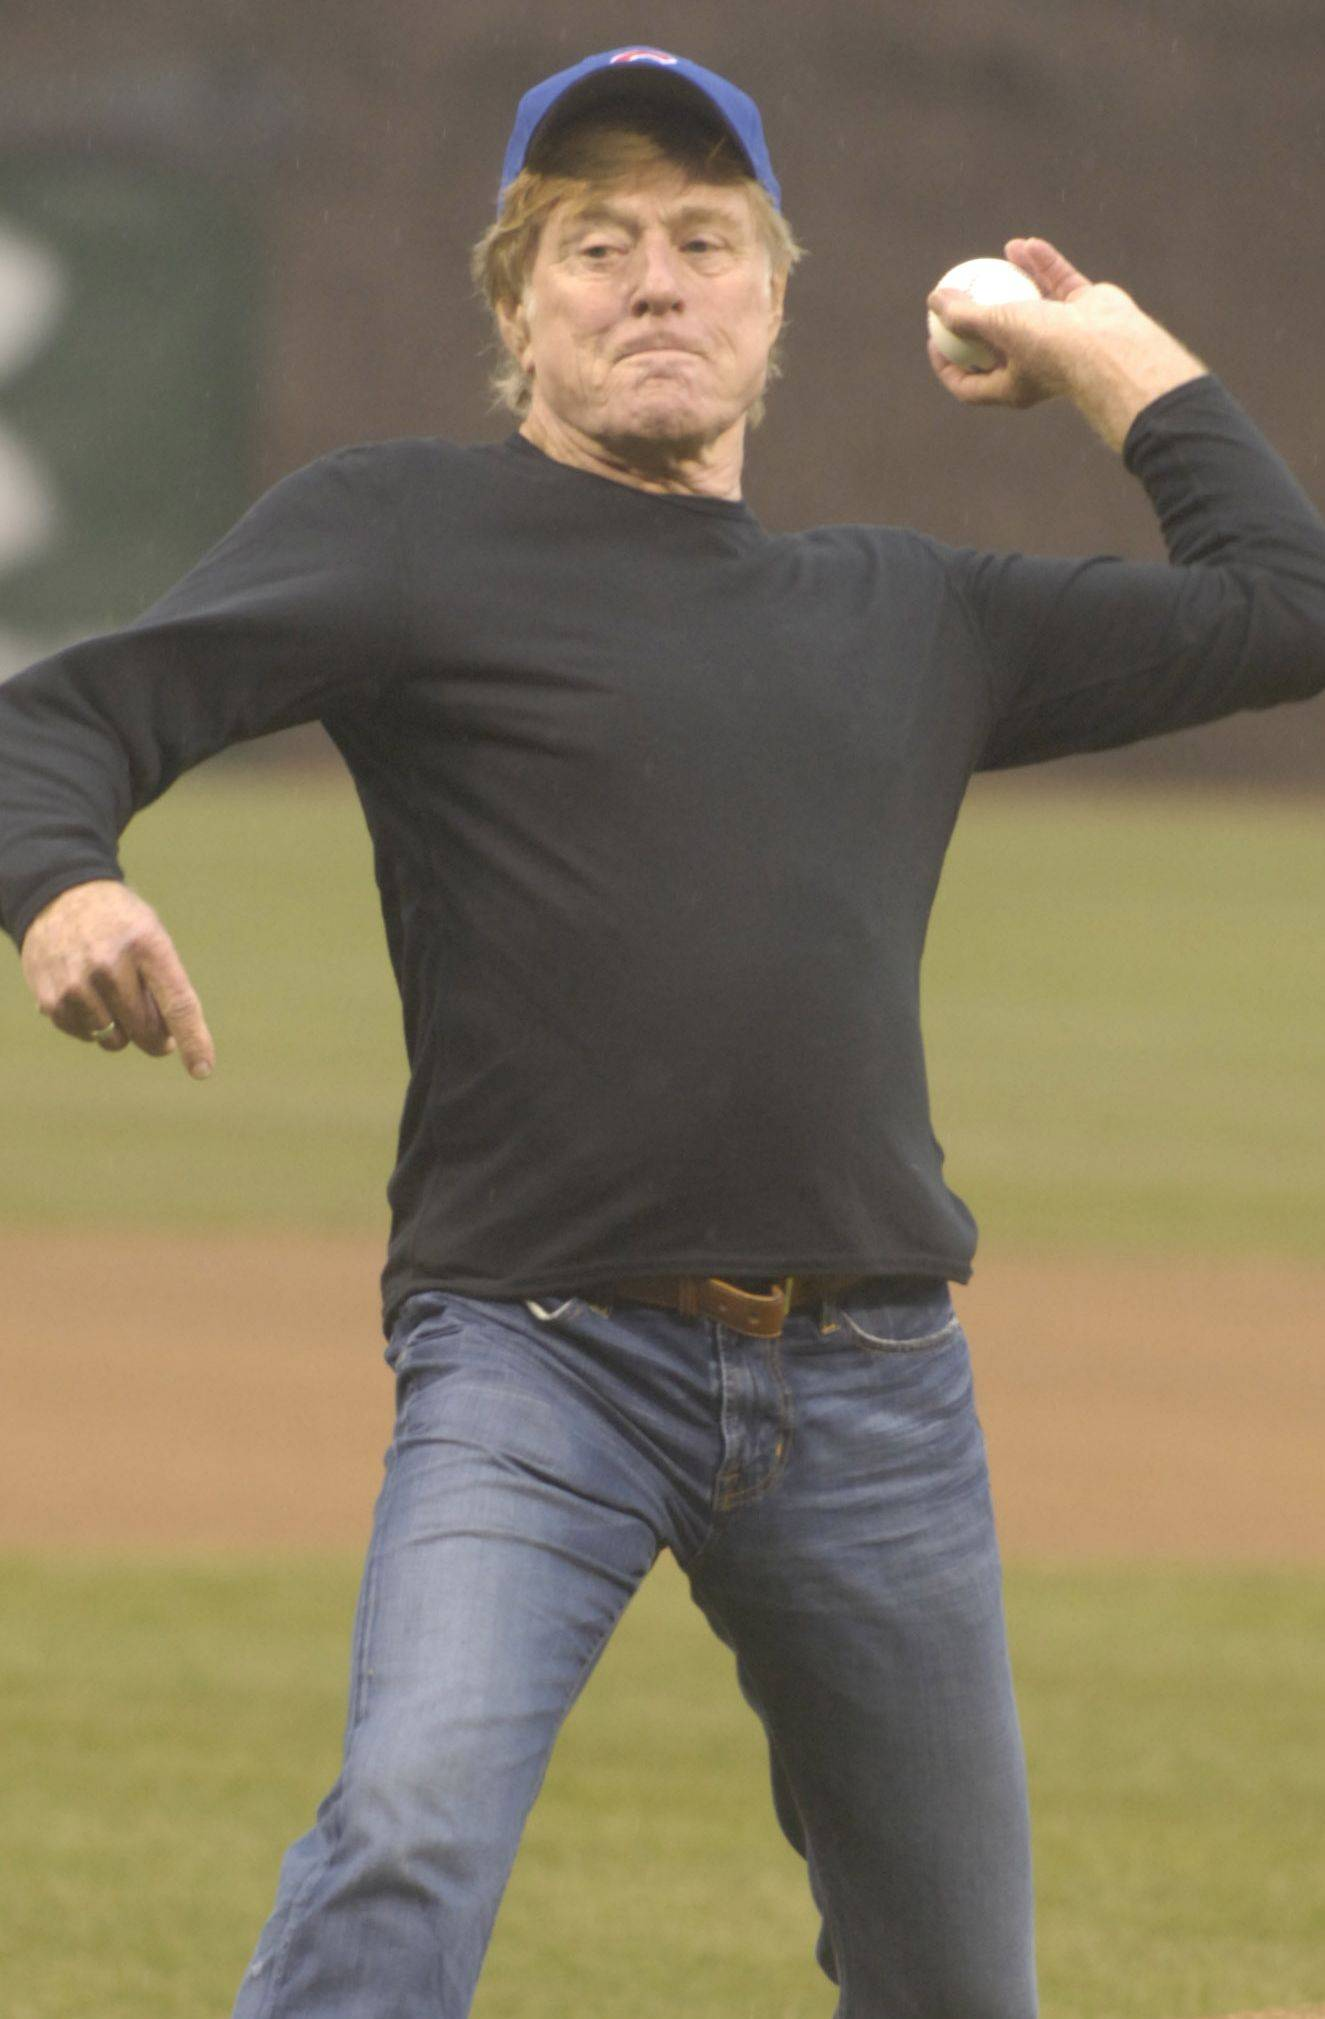 Actor and director Robert Redford throws out the ceremonial first pitch on Opening Day at Wrigley Field.